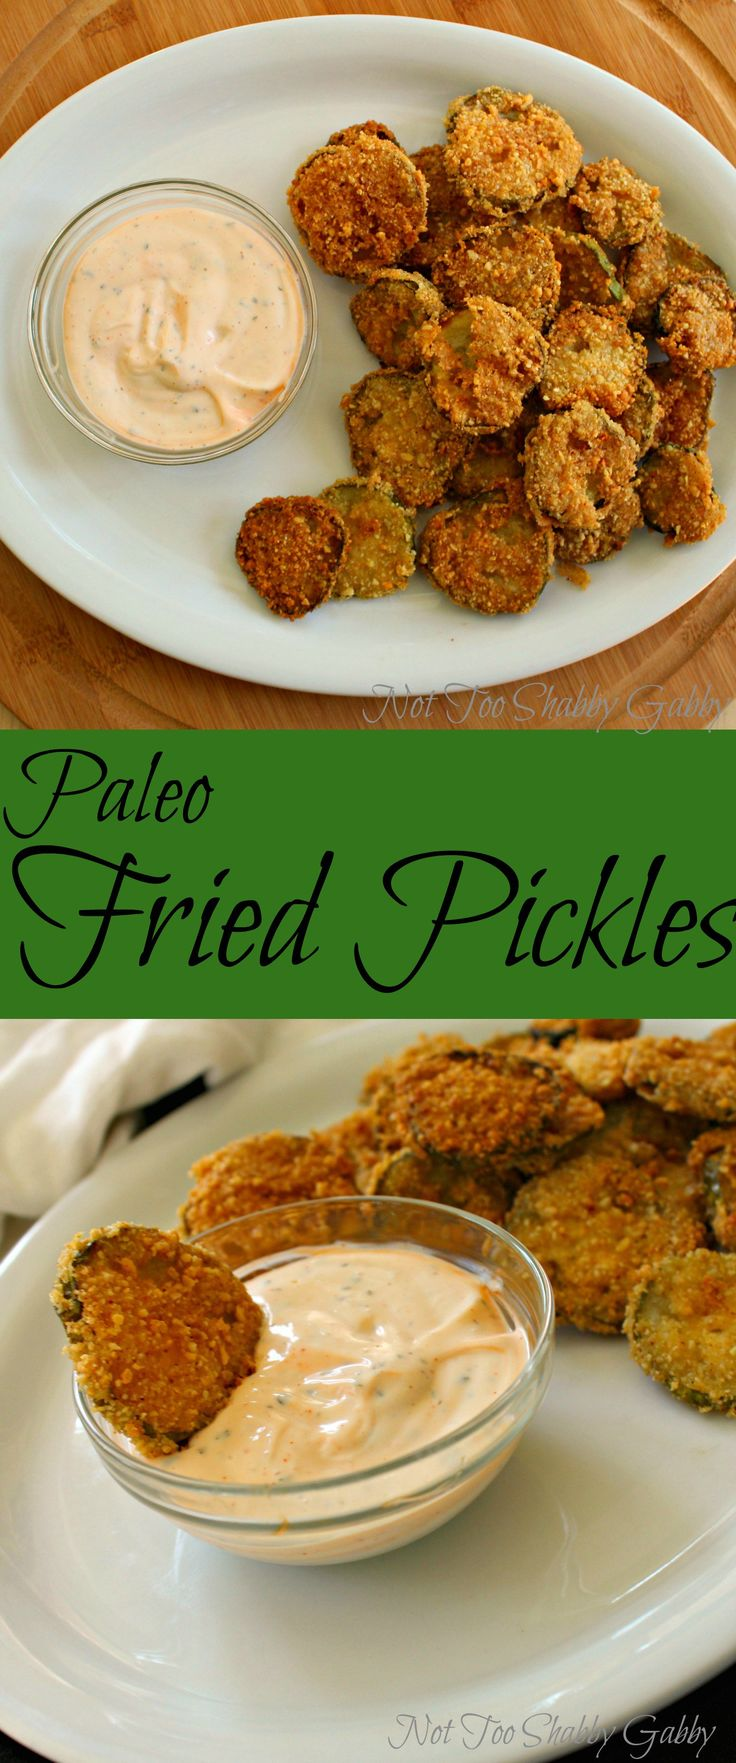 Paleo Fried Pickles the perfect snack to chow down on anytime of the day. So easy to make, super yummy and healthier than many other snacks!  paleo fried pickles   fried pickles   paleo   paleo recipe   gluten free   gluten free recipe   gluten free fried pickles 